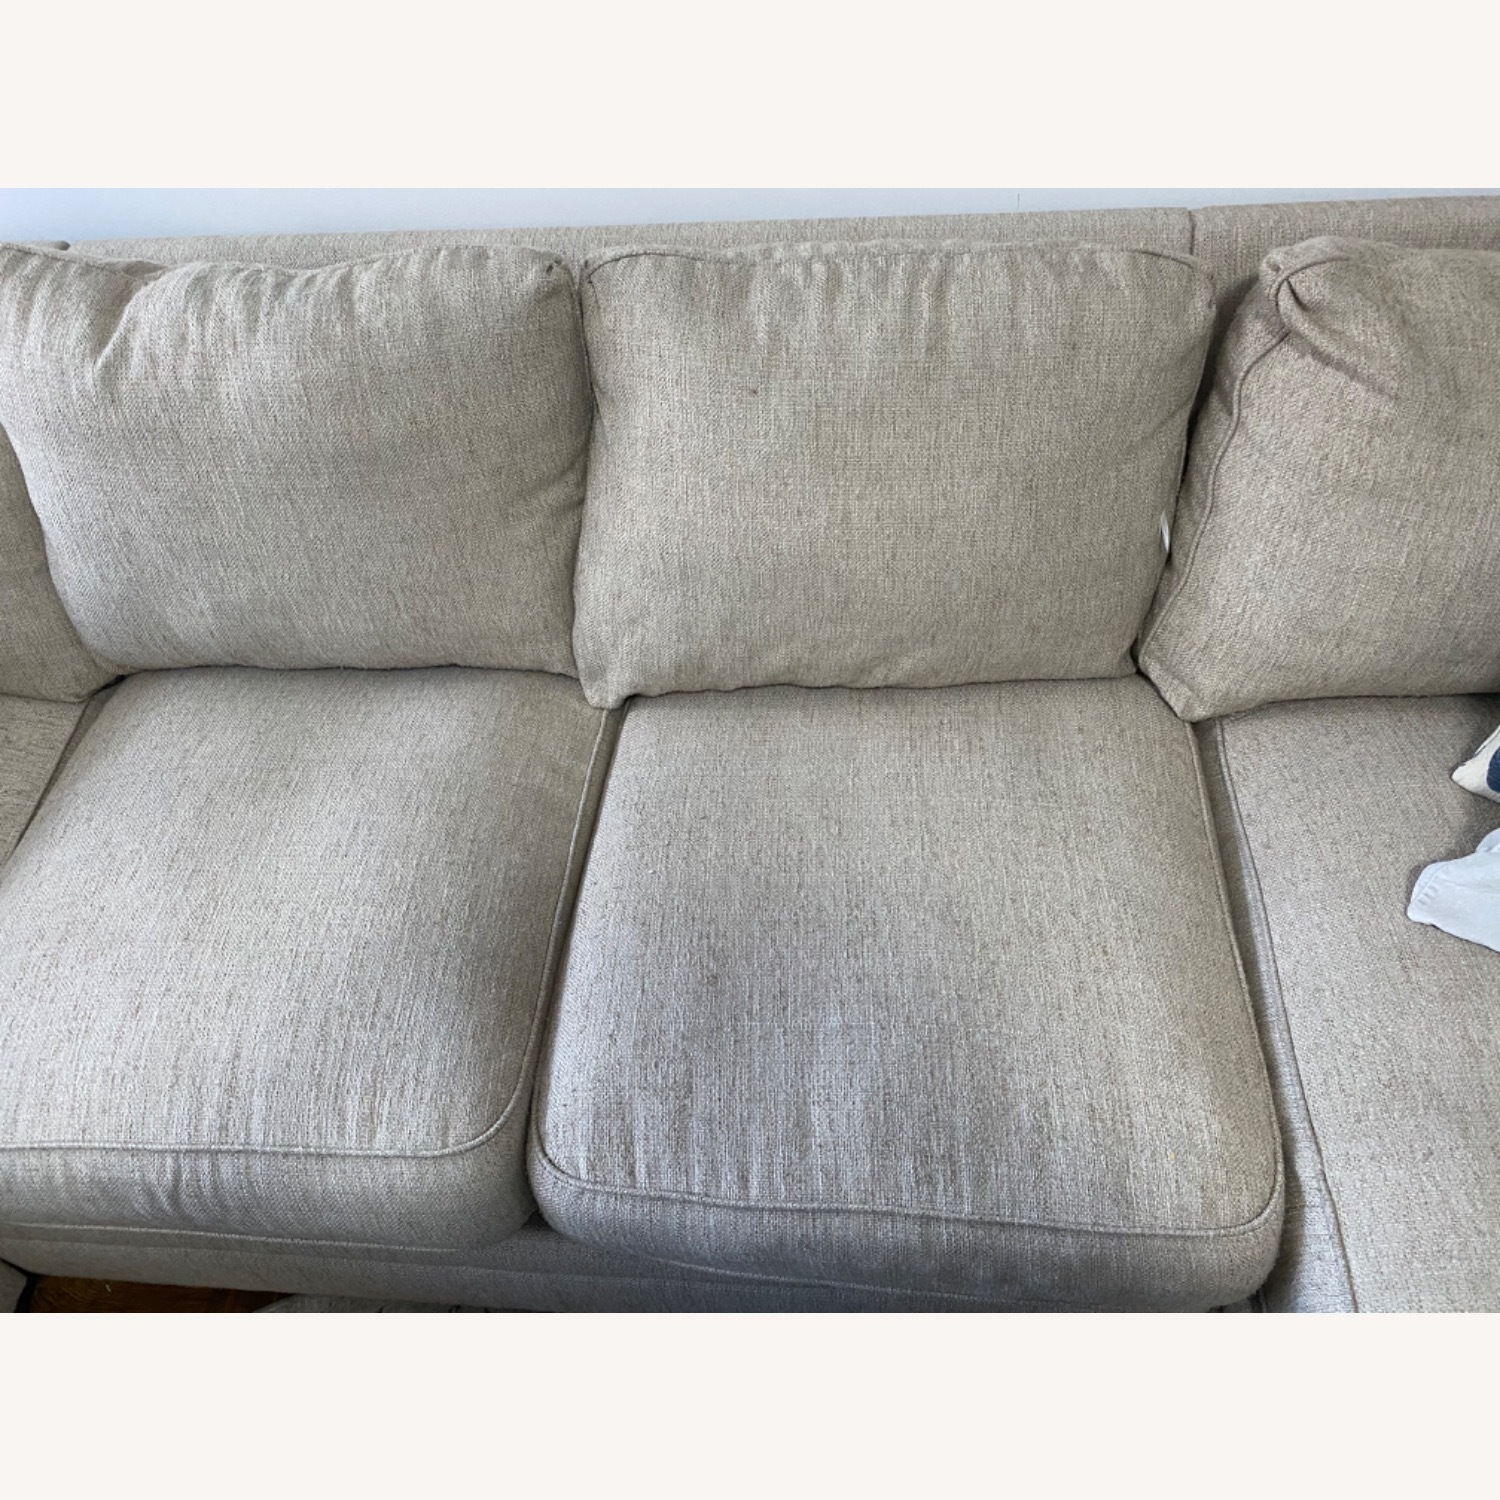 Ashley Home Luxora Beige 4-Piece Sectional Sofa - image-5